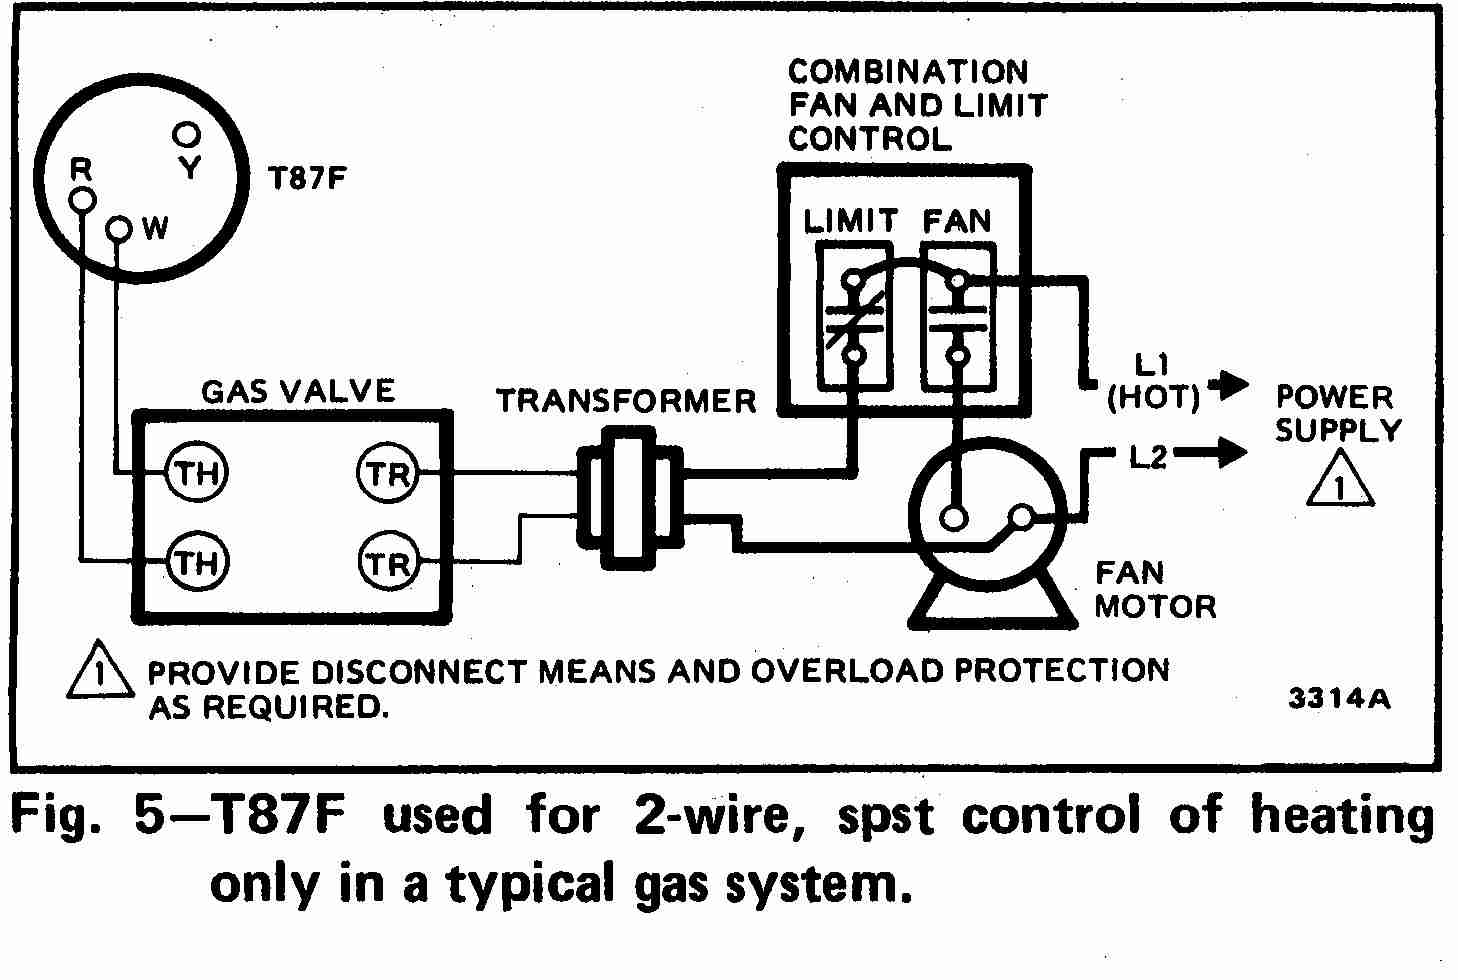 Honeywell T87F Thermostat wiring diagram for 2-wire spst control of heating only in  sc 1 st  InspectAPedia.com : goodman thermostat wiring - yogabreezes.com